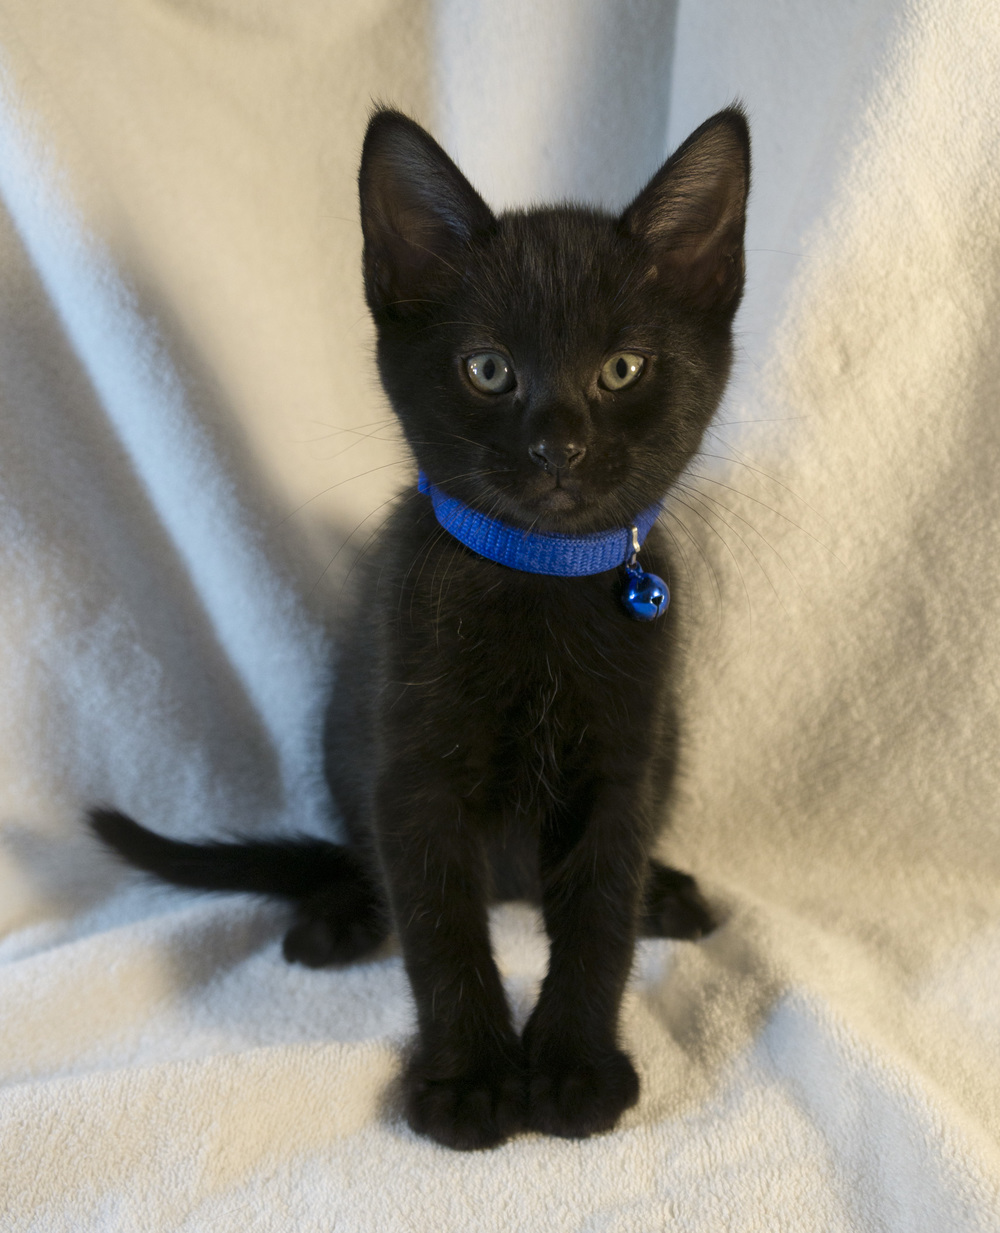 Lieutenant Broccoli  is one of the two boys in the litter, and he also loves his people.  Playful and affectionate in equal parts, he'll make a fine feline friend.